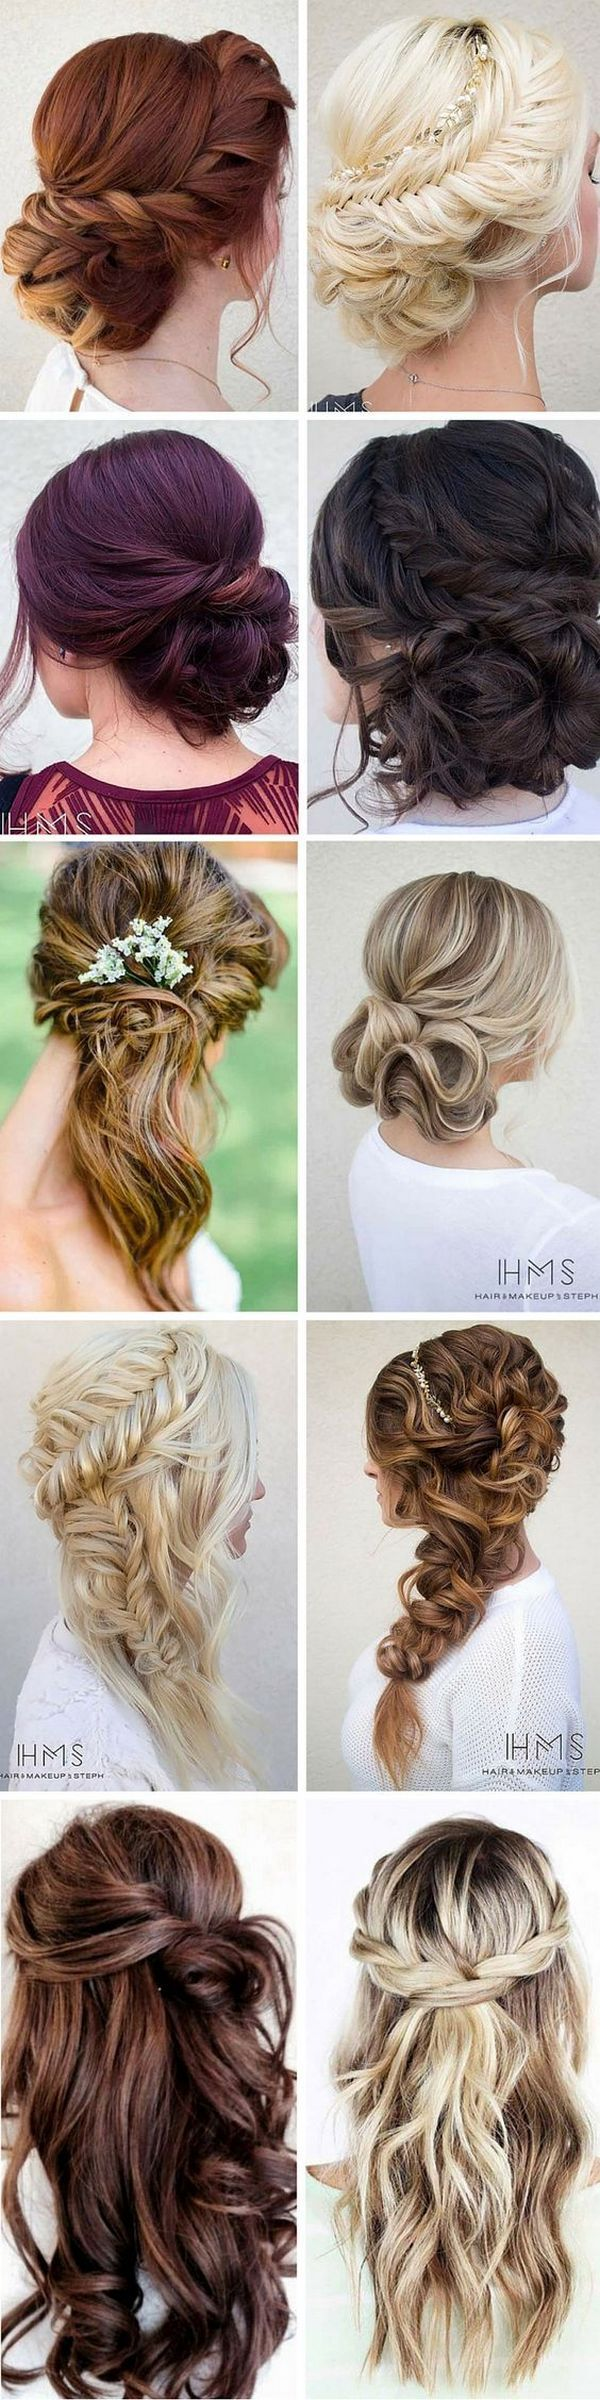 best braided hairstyles images on pinterest hair style